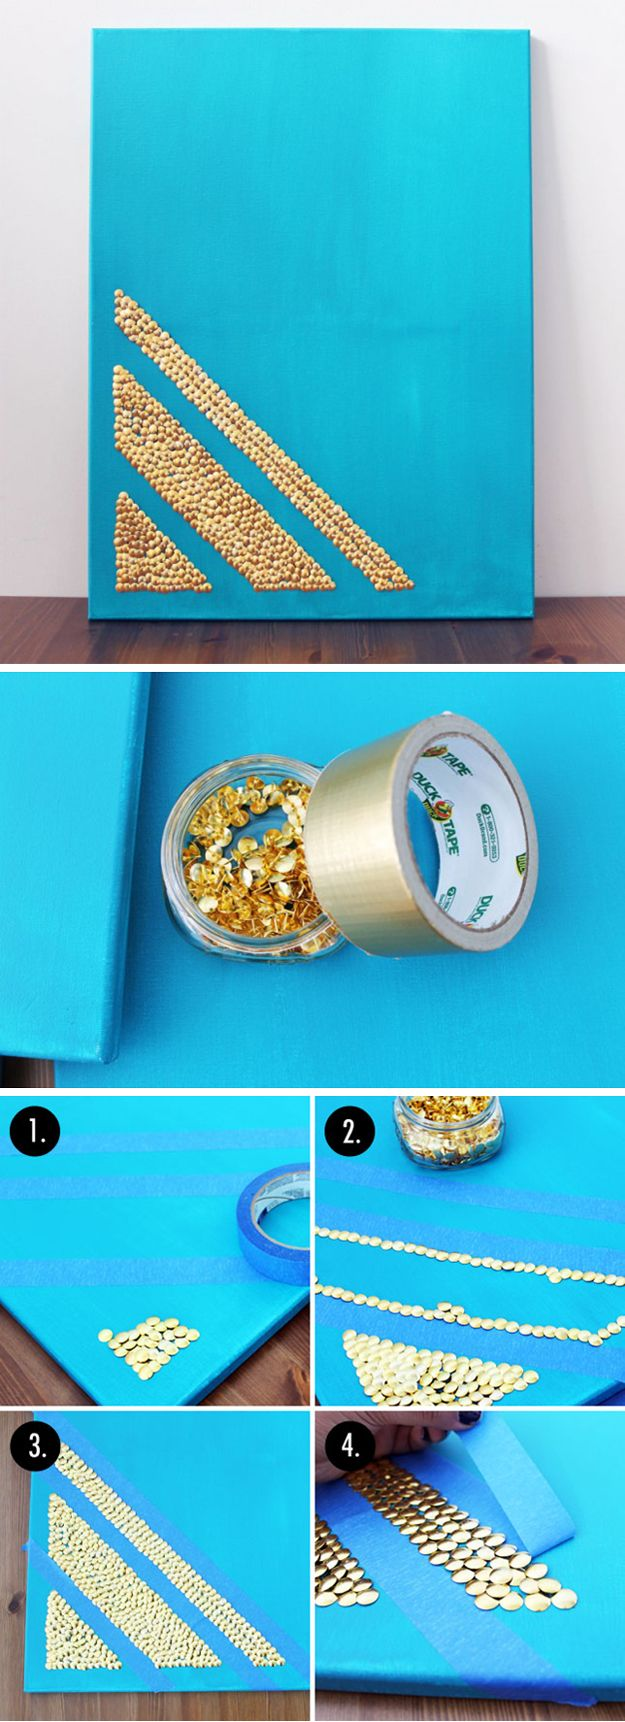 Cool and Simple DIY Wall Art Design | Thumbtack Art By DIY Ready at http://diyready.com/diy-wall-art-you-can-make-in-under-an-hour/